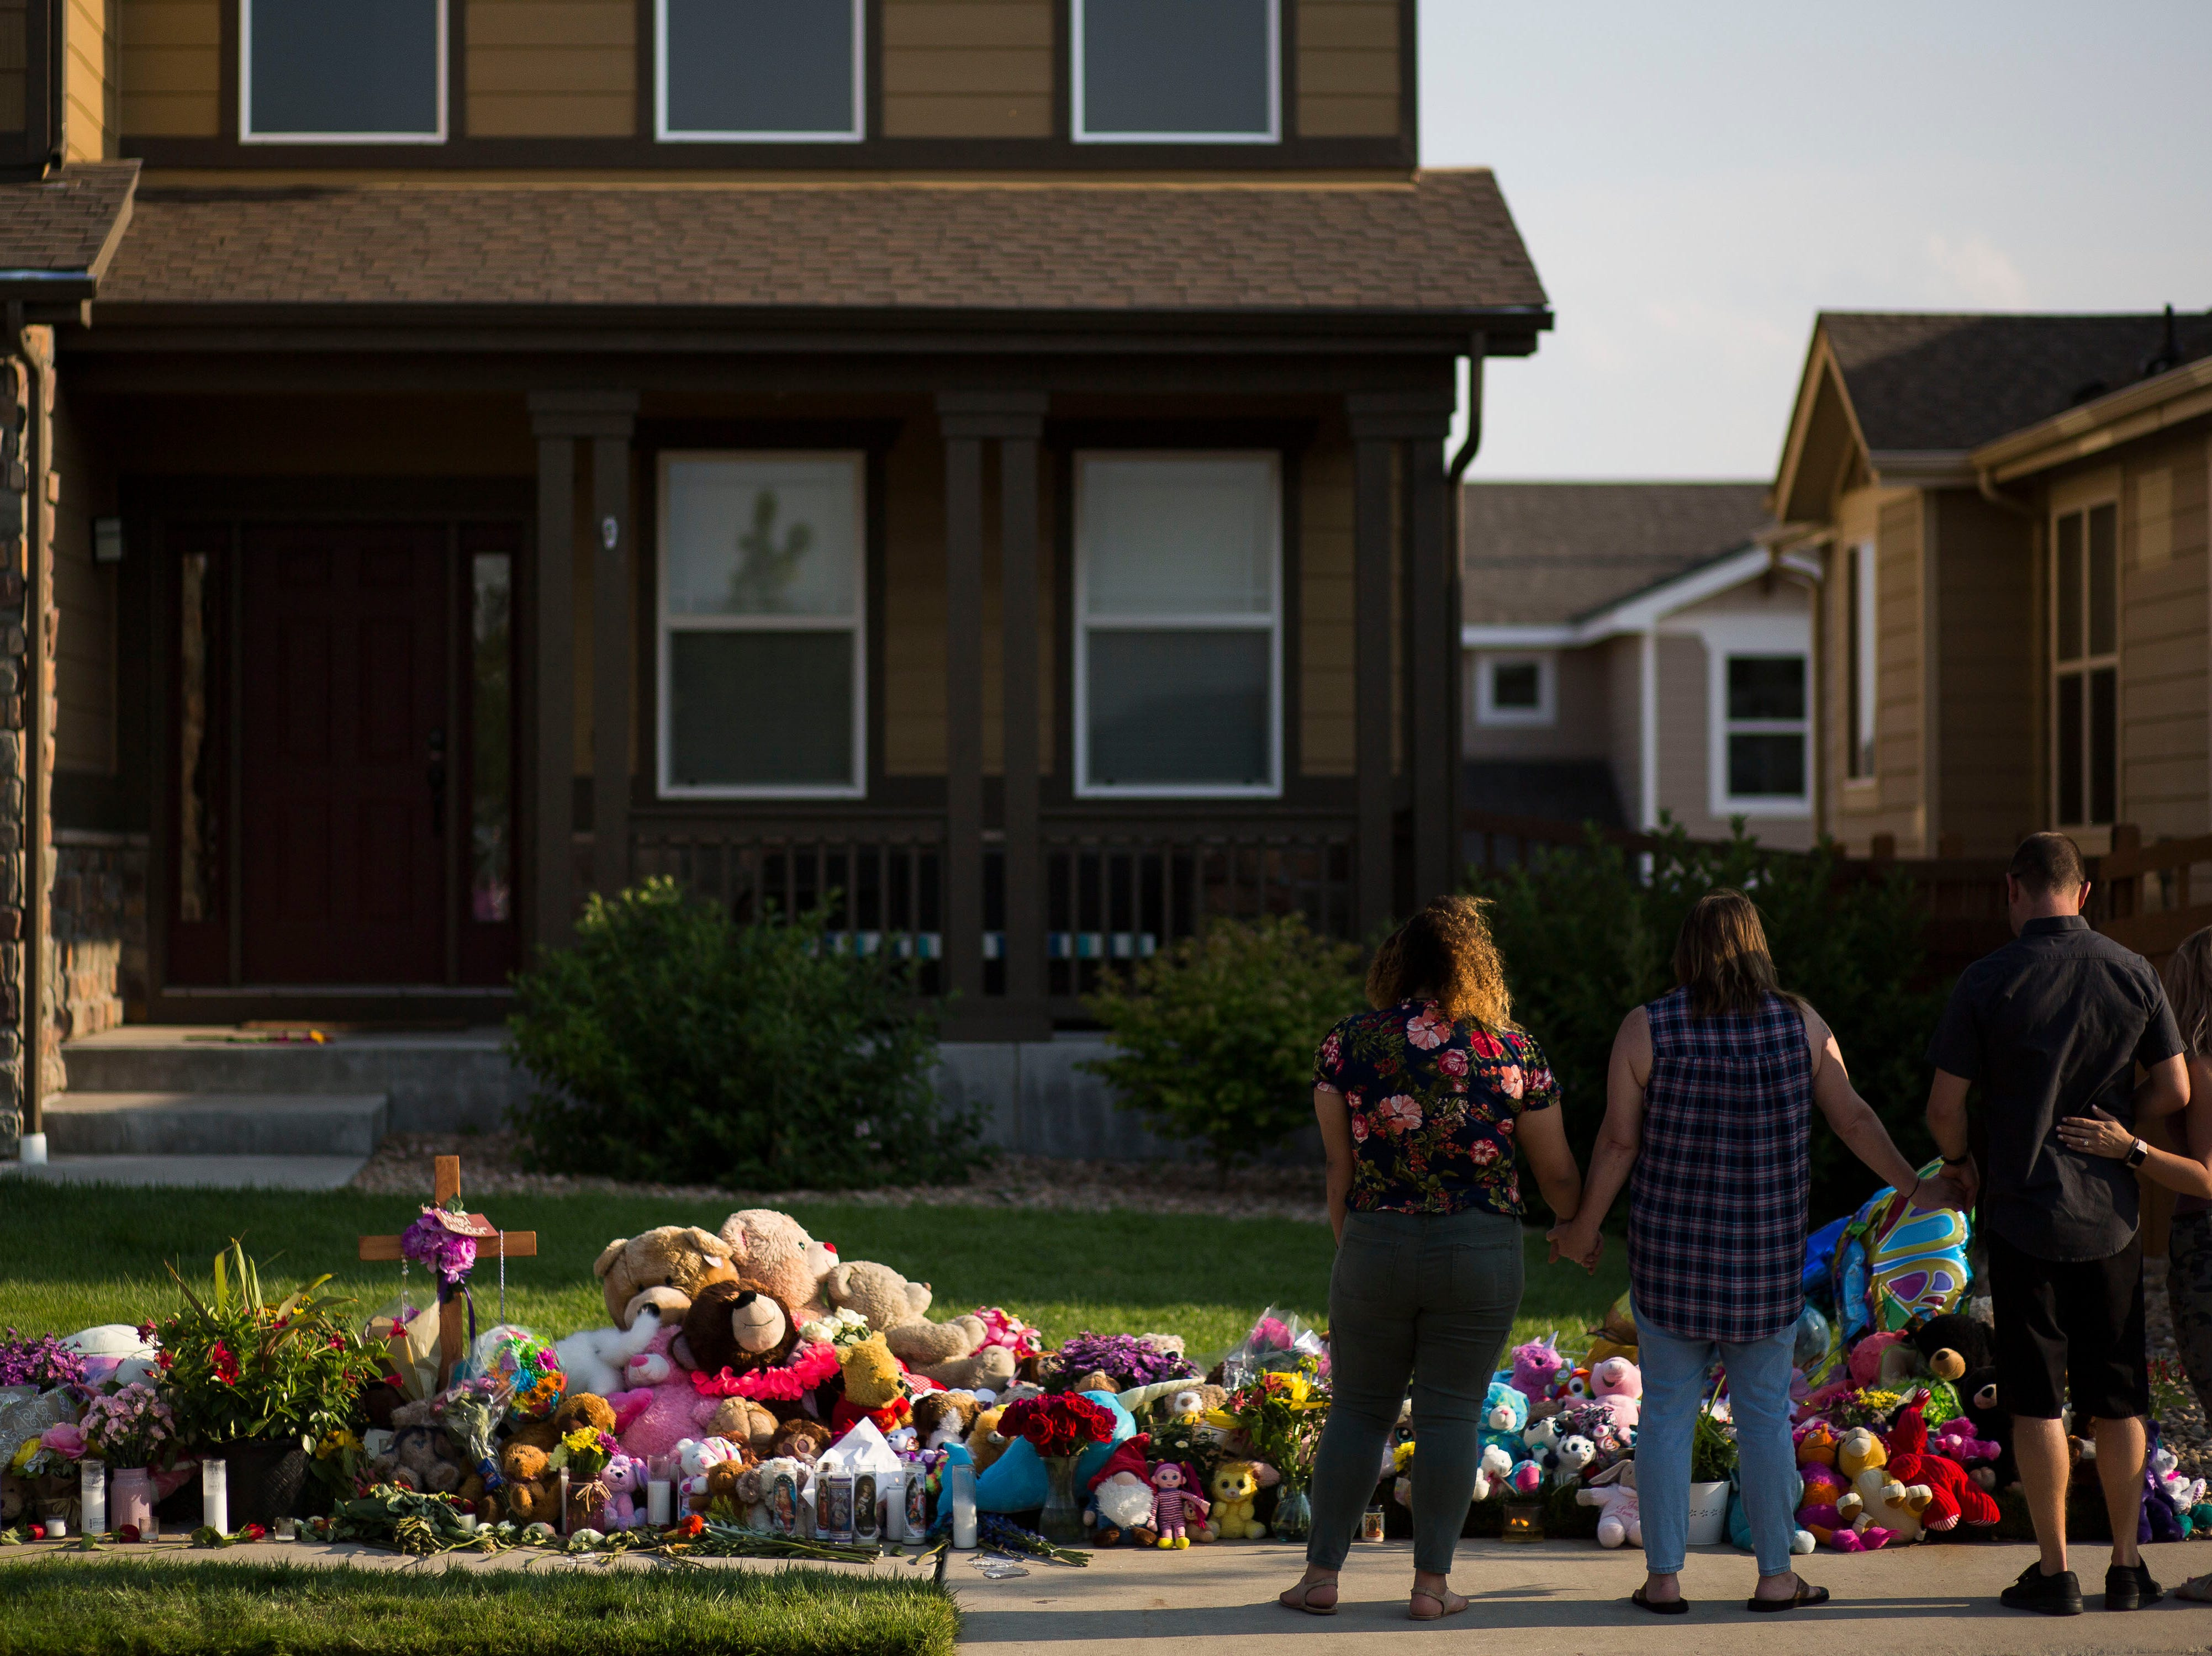 People gather at a memorial for the slain Shanann Watts and her two daughters, Bella, 4, and Celeste, 3, in front of the Watts' family home on Friday, Aug. 17, 2018, in Frederick, Colo.